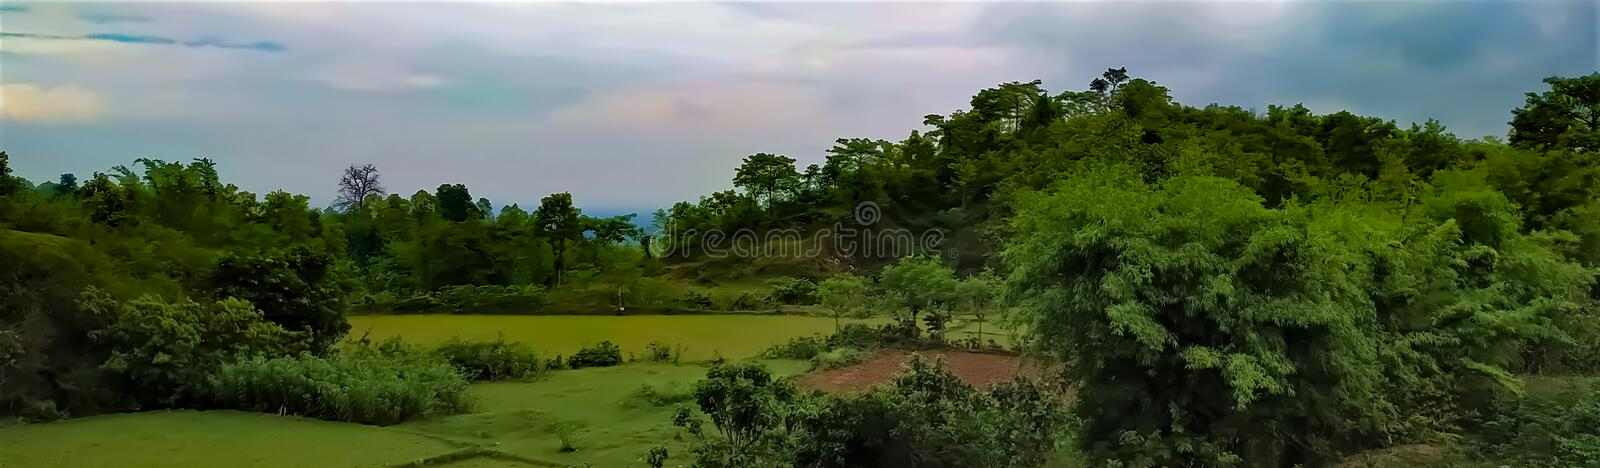 A beautiful landscape view of Indian rural area, skyline view with trees, fields and cloud. This is a picture of a beautiful landscape view of Indian rural area royalty free stock photos